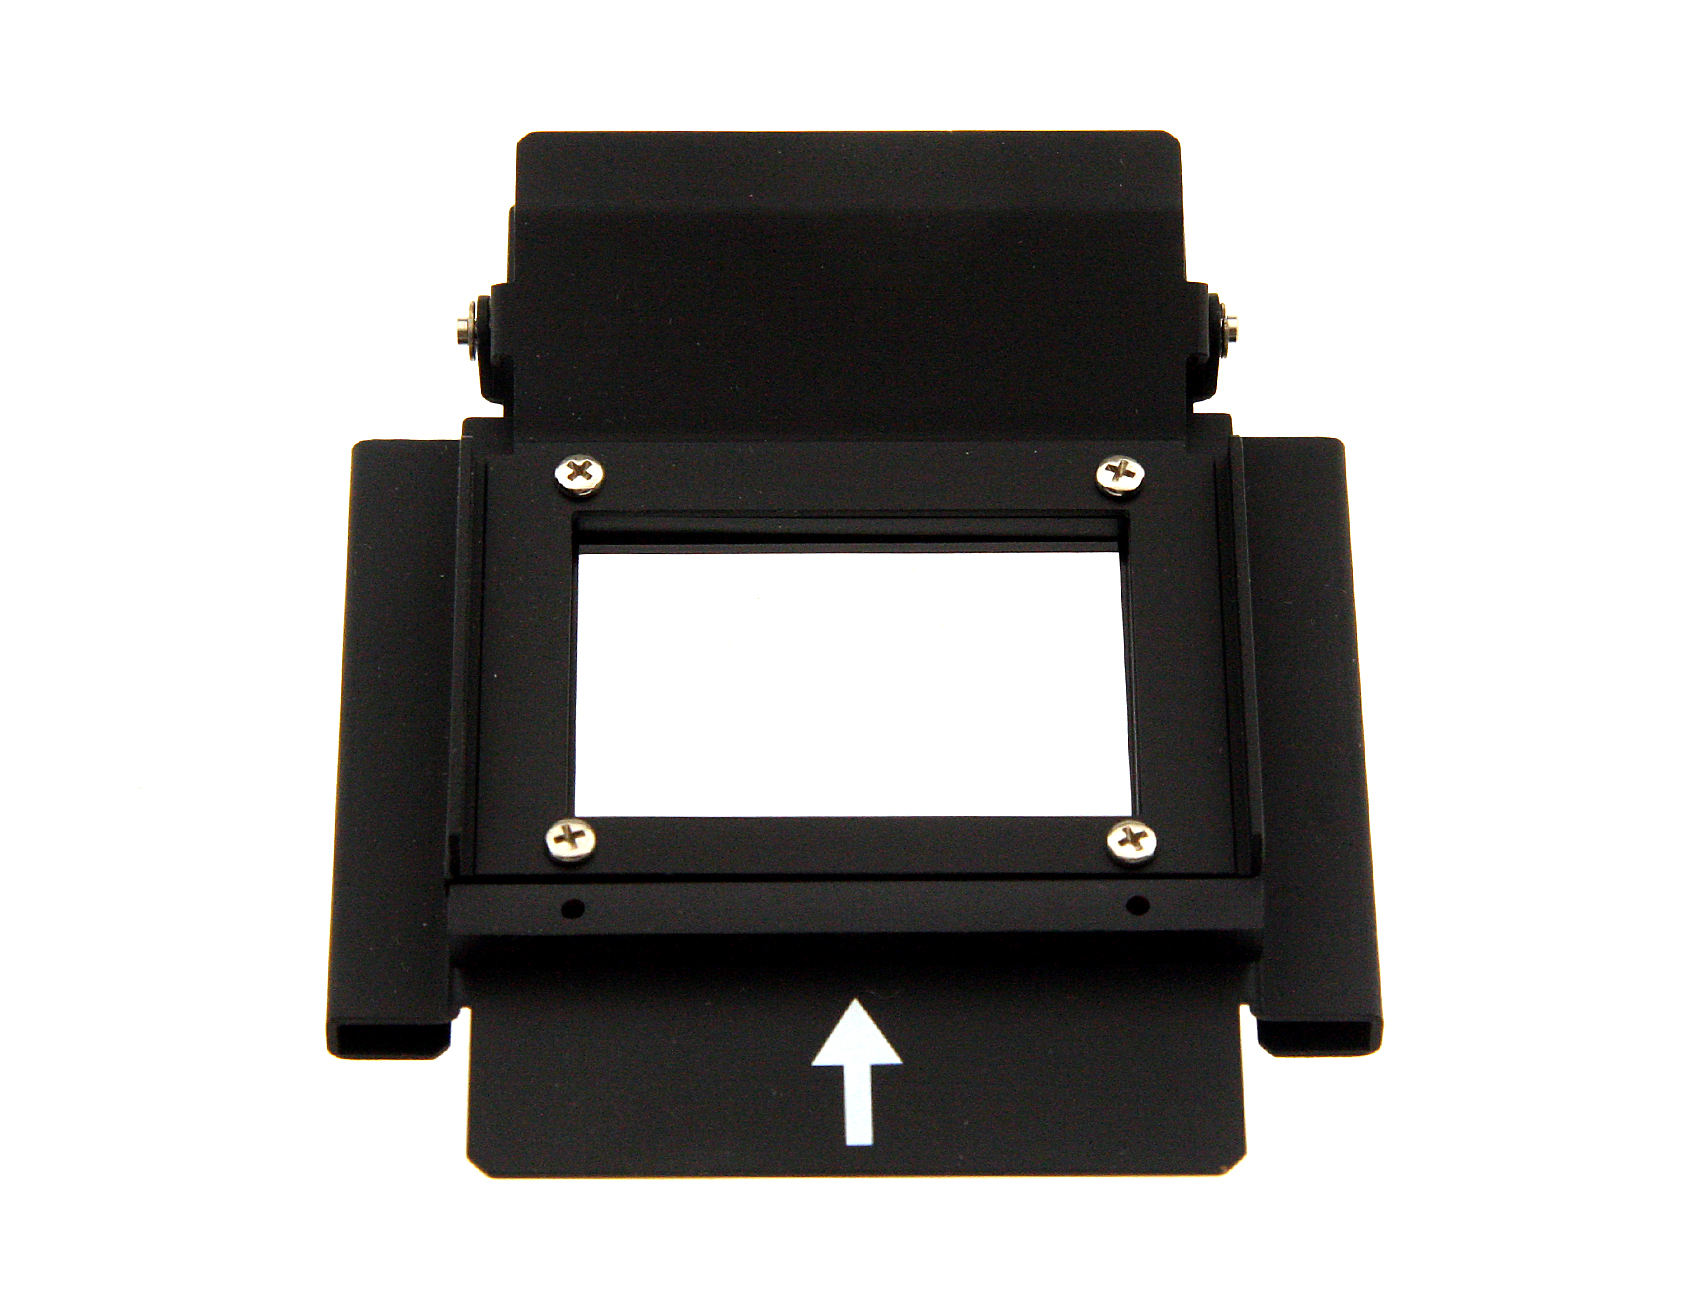 FH-10L Strip Film Holder